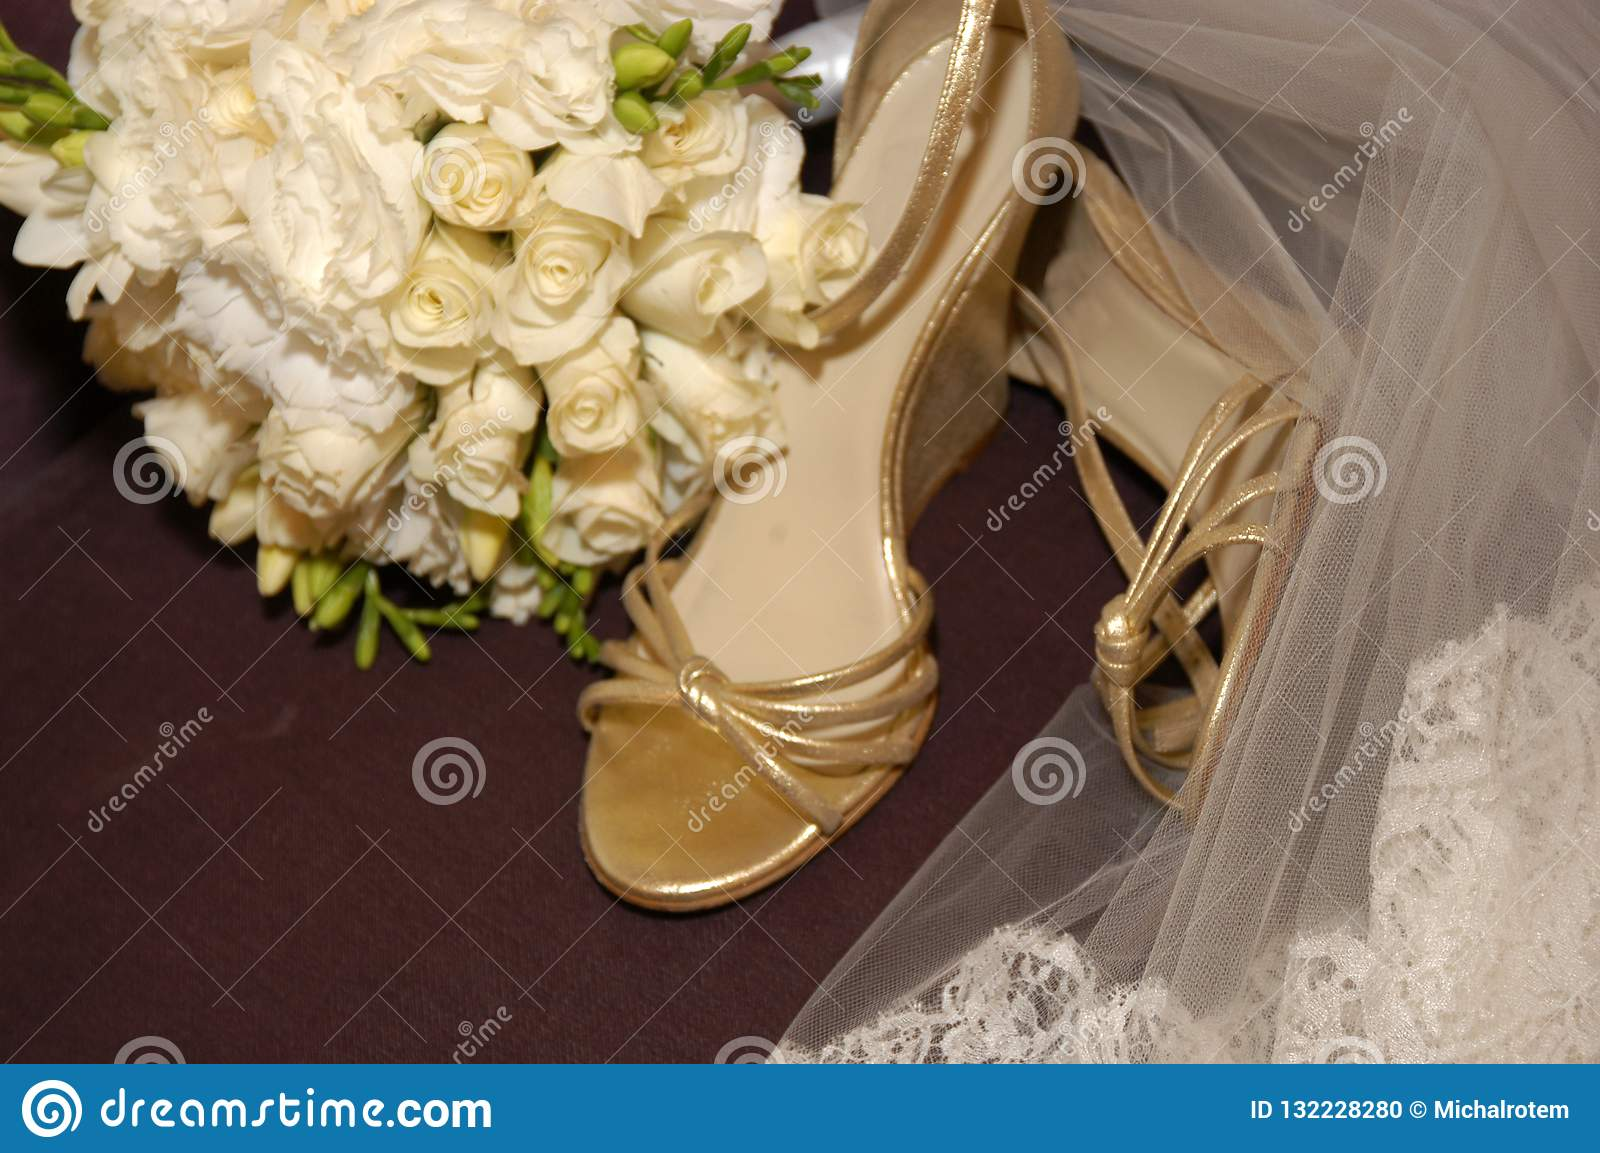 Wedding Sandals For Bride.Wedding Sandals Shoes And Veil Of The Bride Stock Photo Image Of